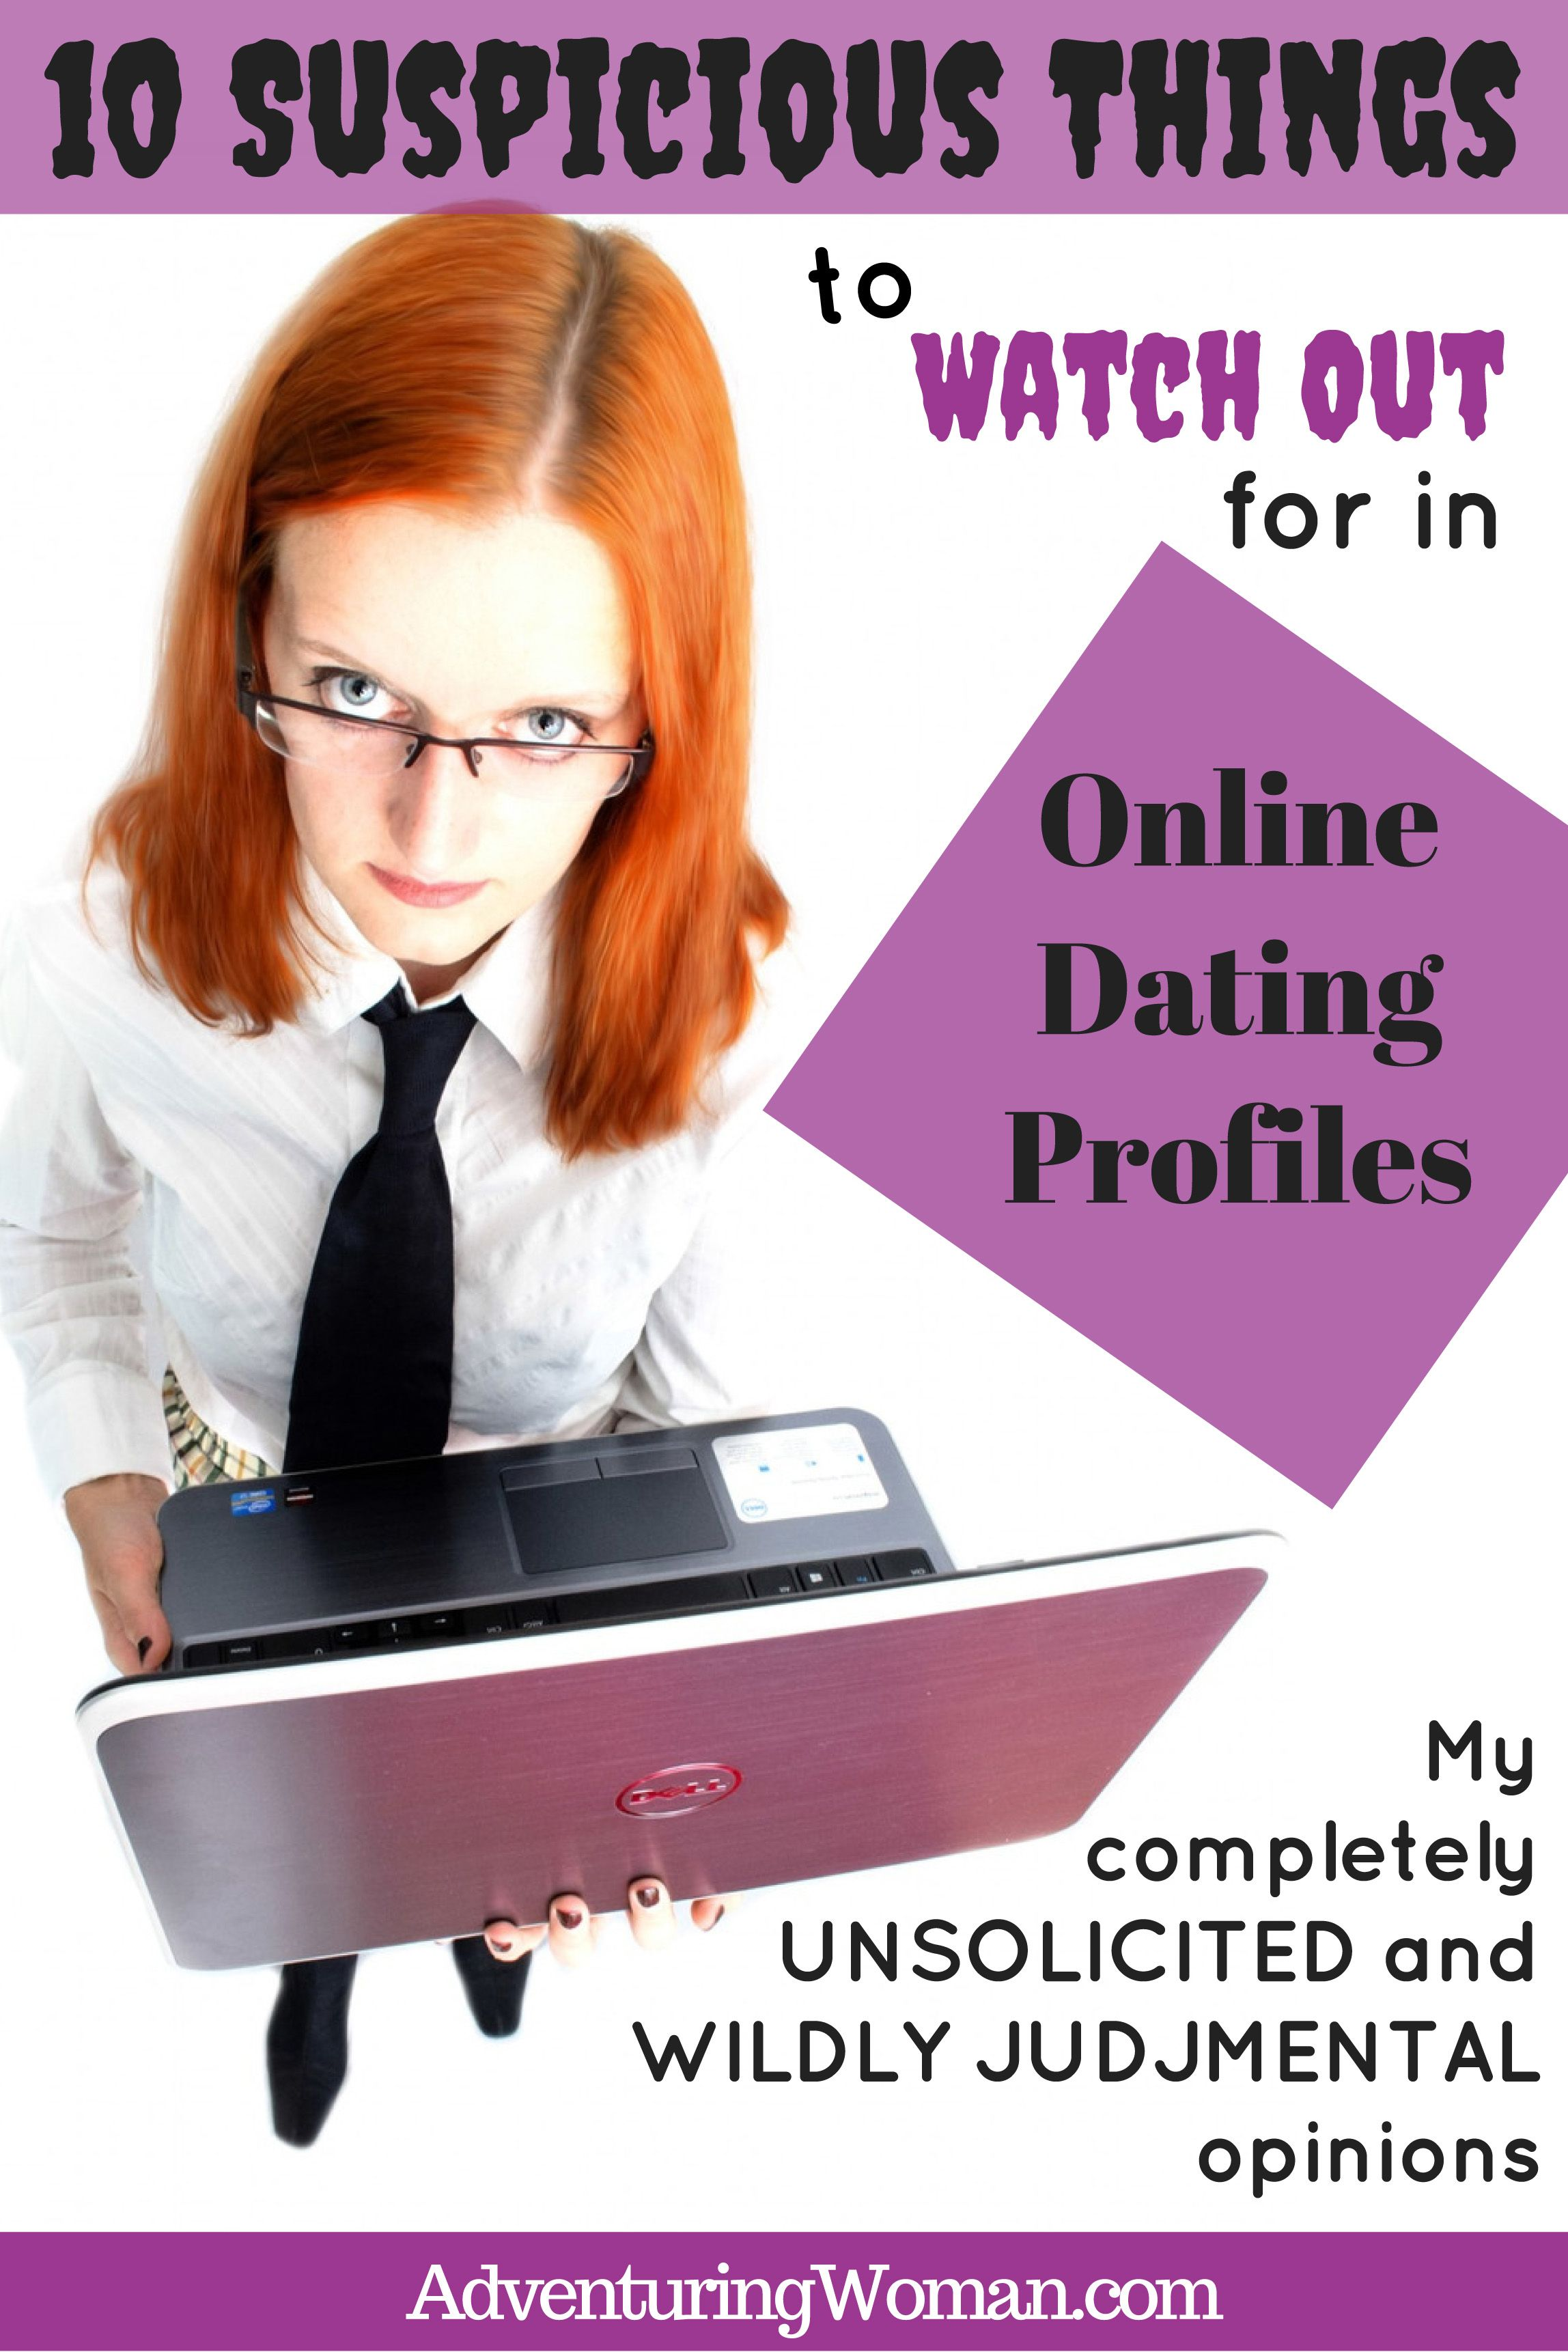 Things to watchout for when online dating